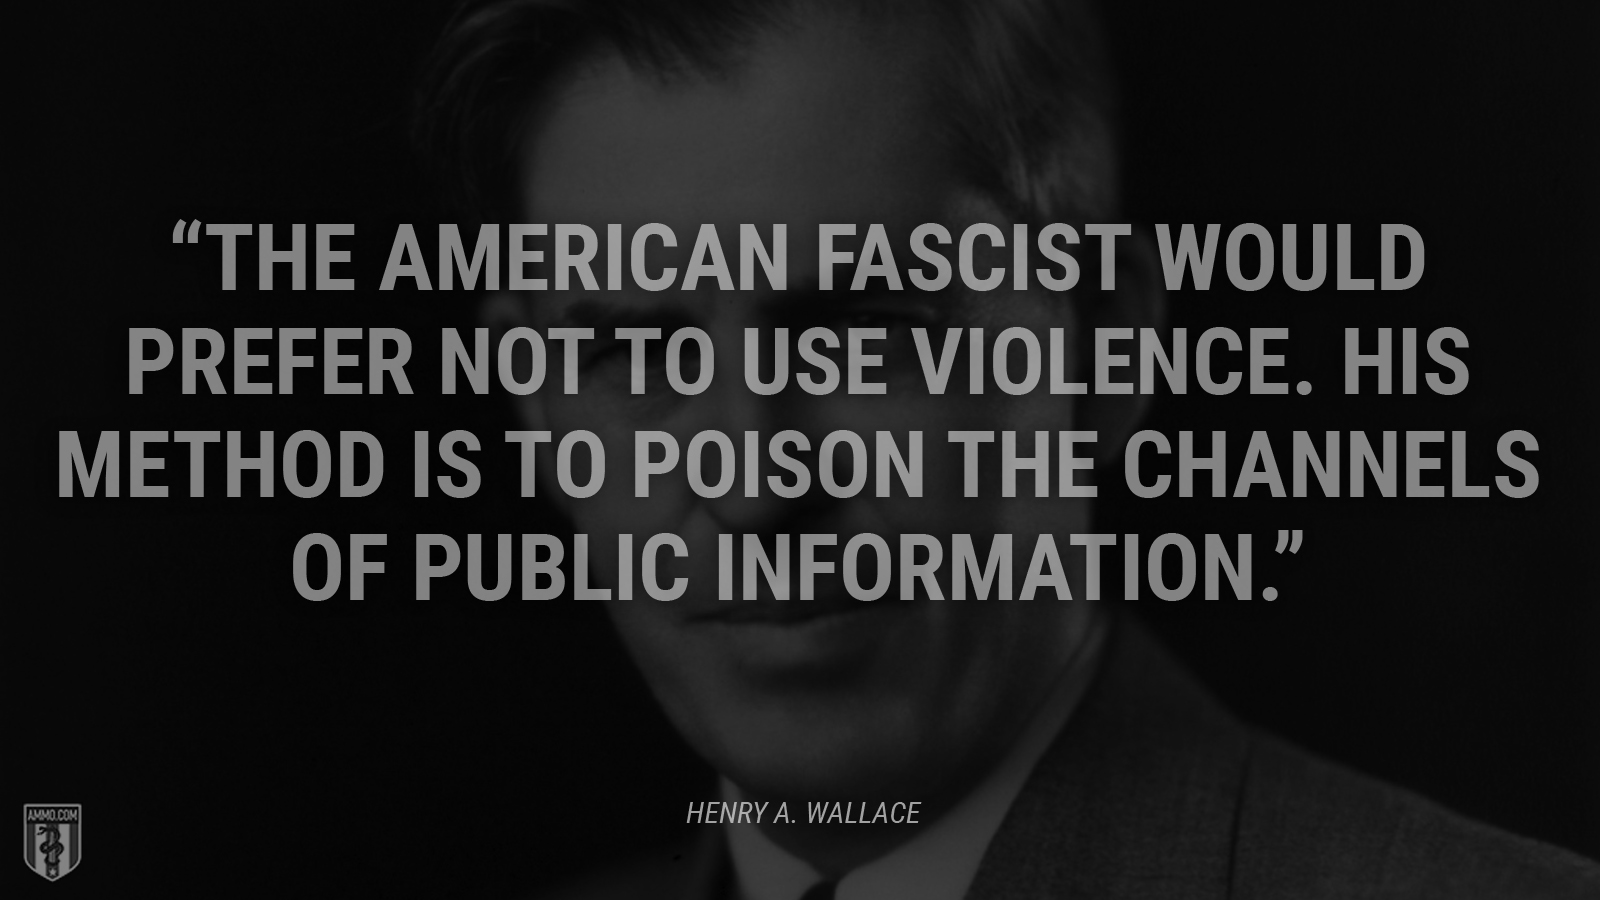 """The American fascist would prefer not to use violence. His method is to poison the channels of public information."" - Henry A. Wallace"